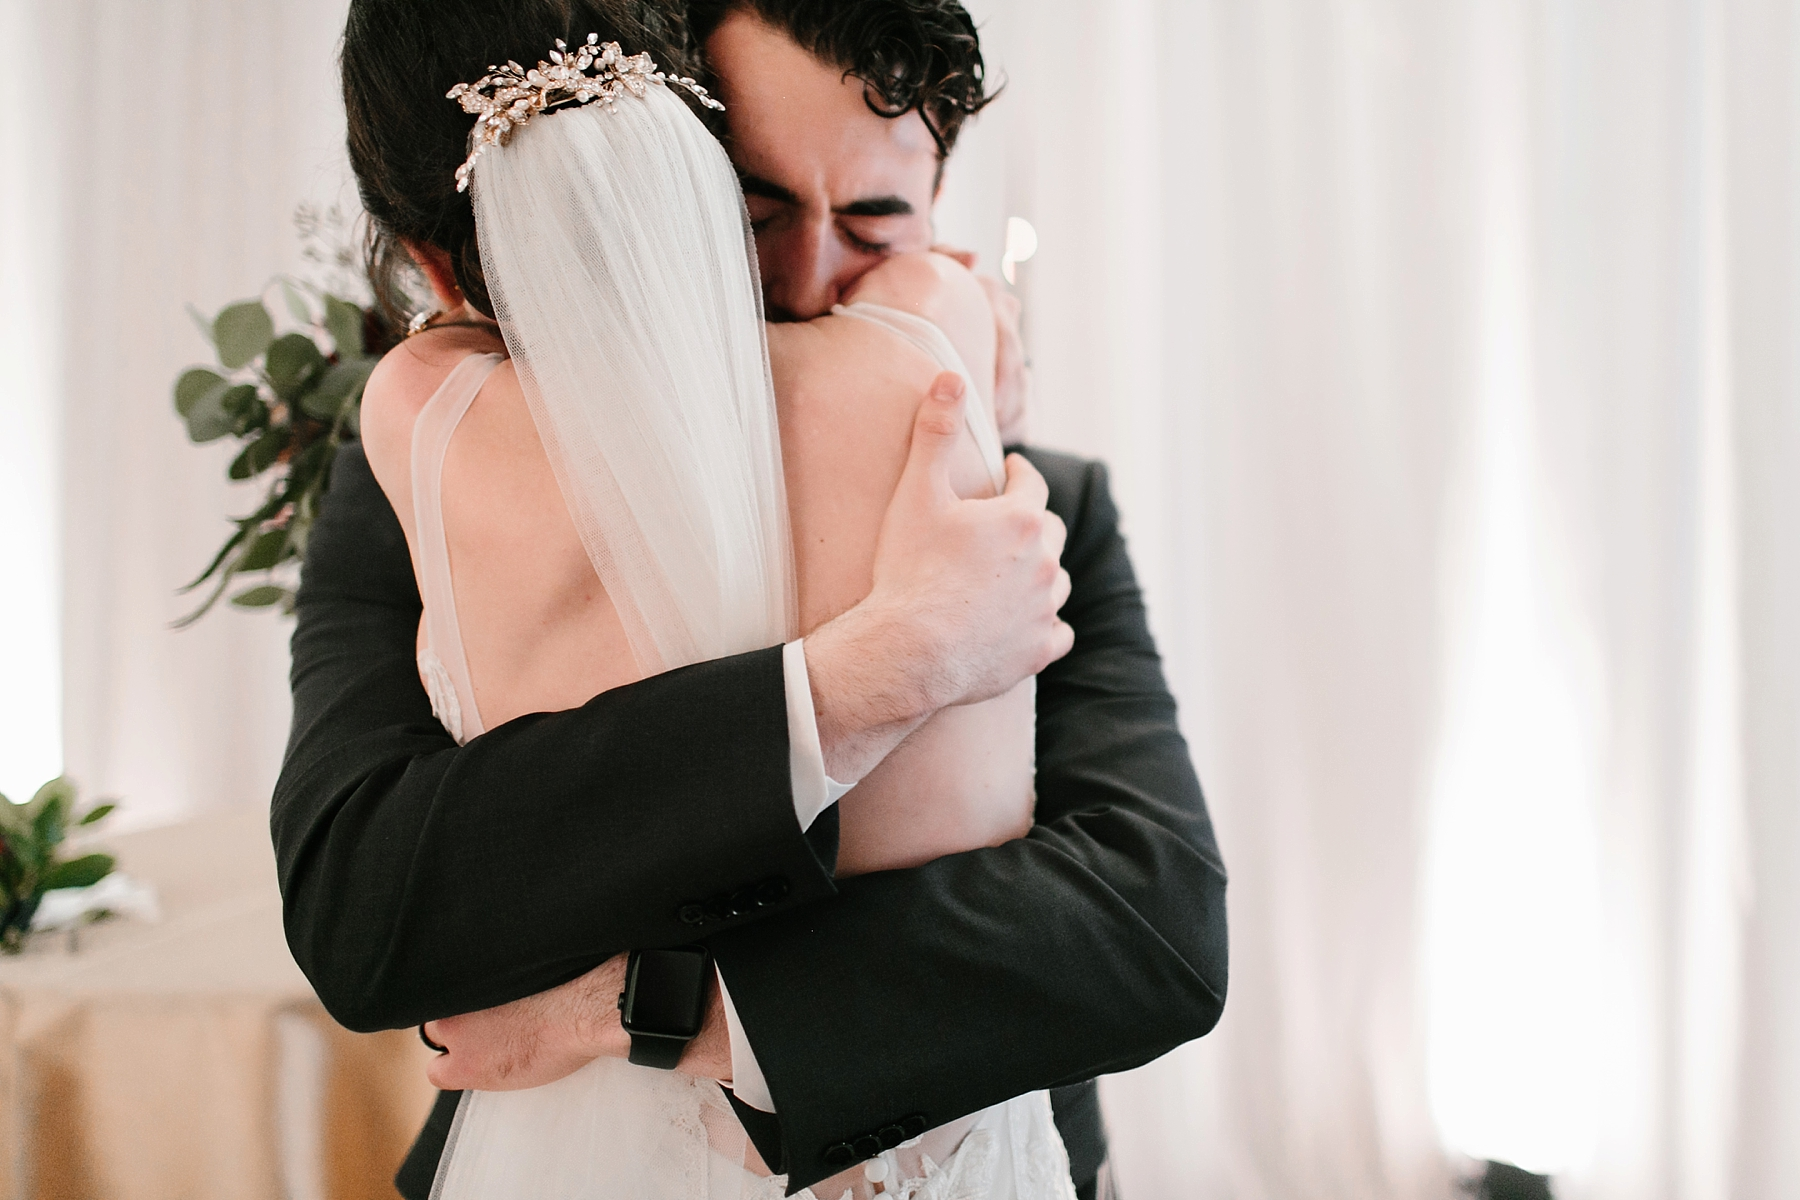 Emily + Caleb _ an elegant, intentional, industrial style wedding with navy + gold accents at 6500 in Dallas, TX by North Texas Wedding Photographer Rachel Meagan Photography _ 105